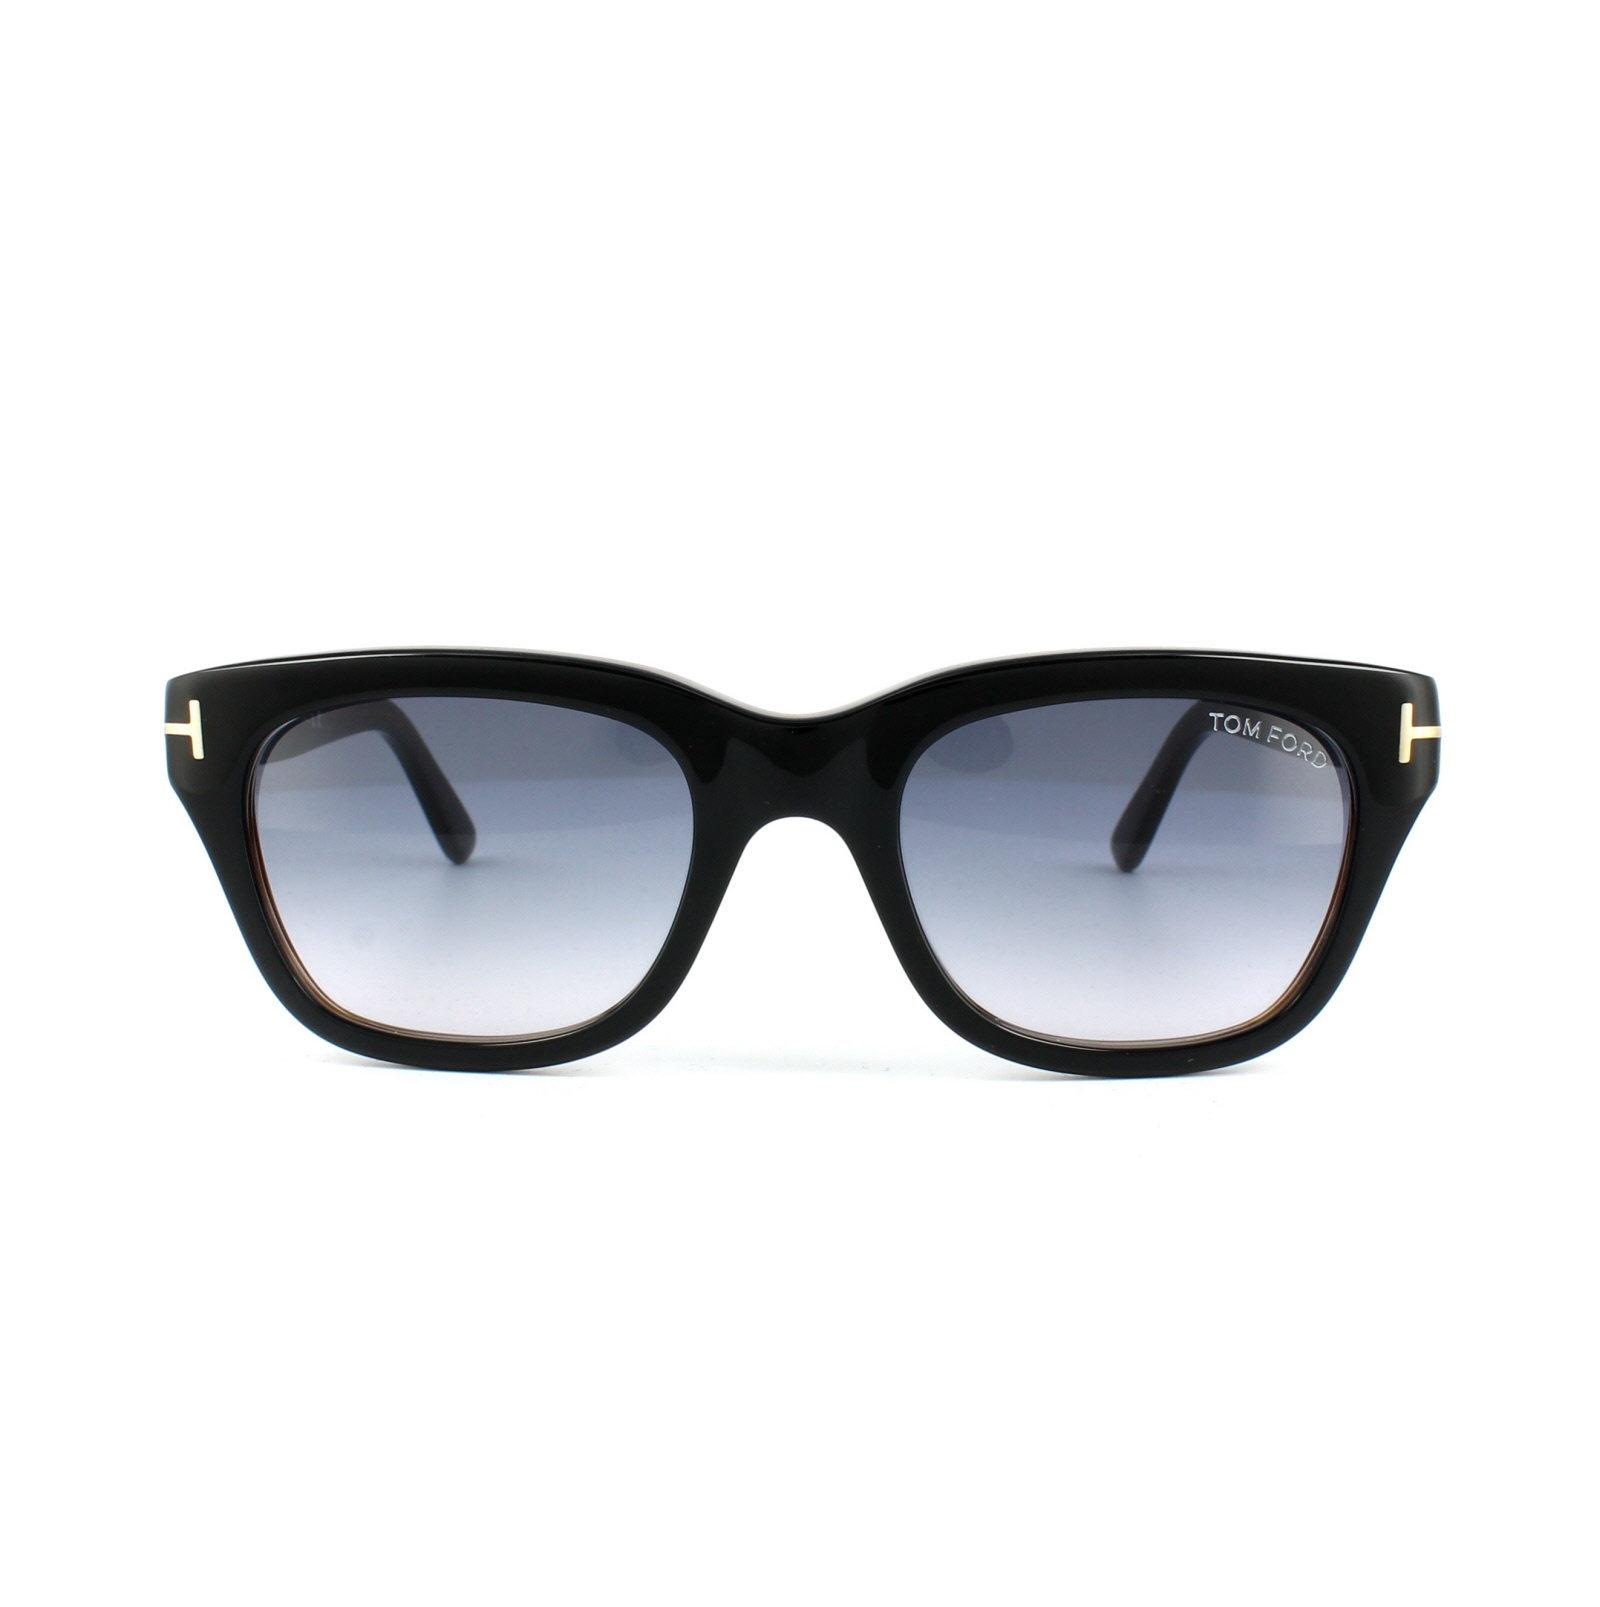 f2d18f5e199 Sentinel Tom Ford Sunglasses 0237 Snowdon 05B Black   Brown Smoke Grey  Gradient